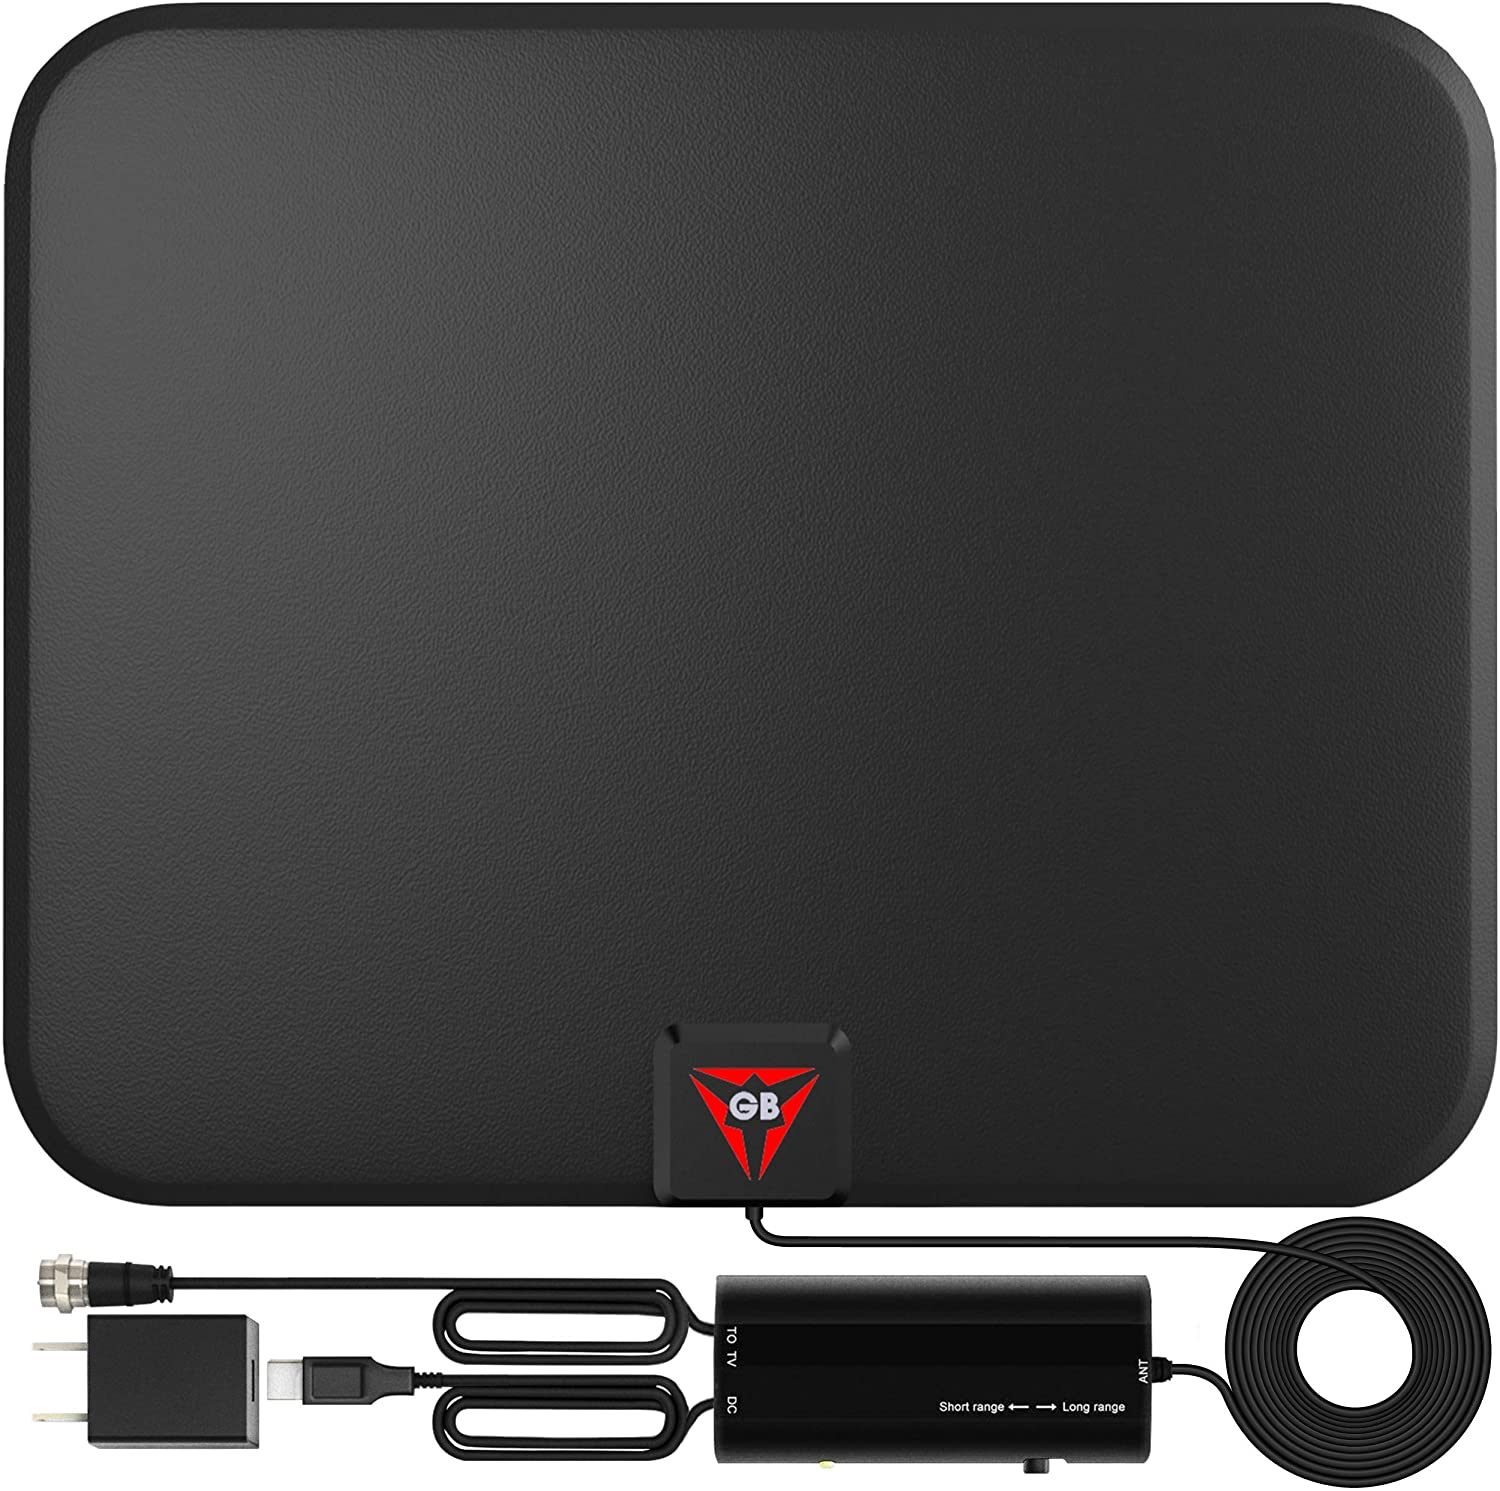 Gesobyte Smart Switch Amplified HD Digital TV Antenna, 180-Mile Range